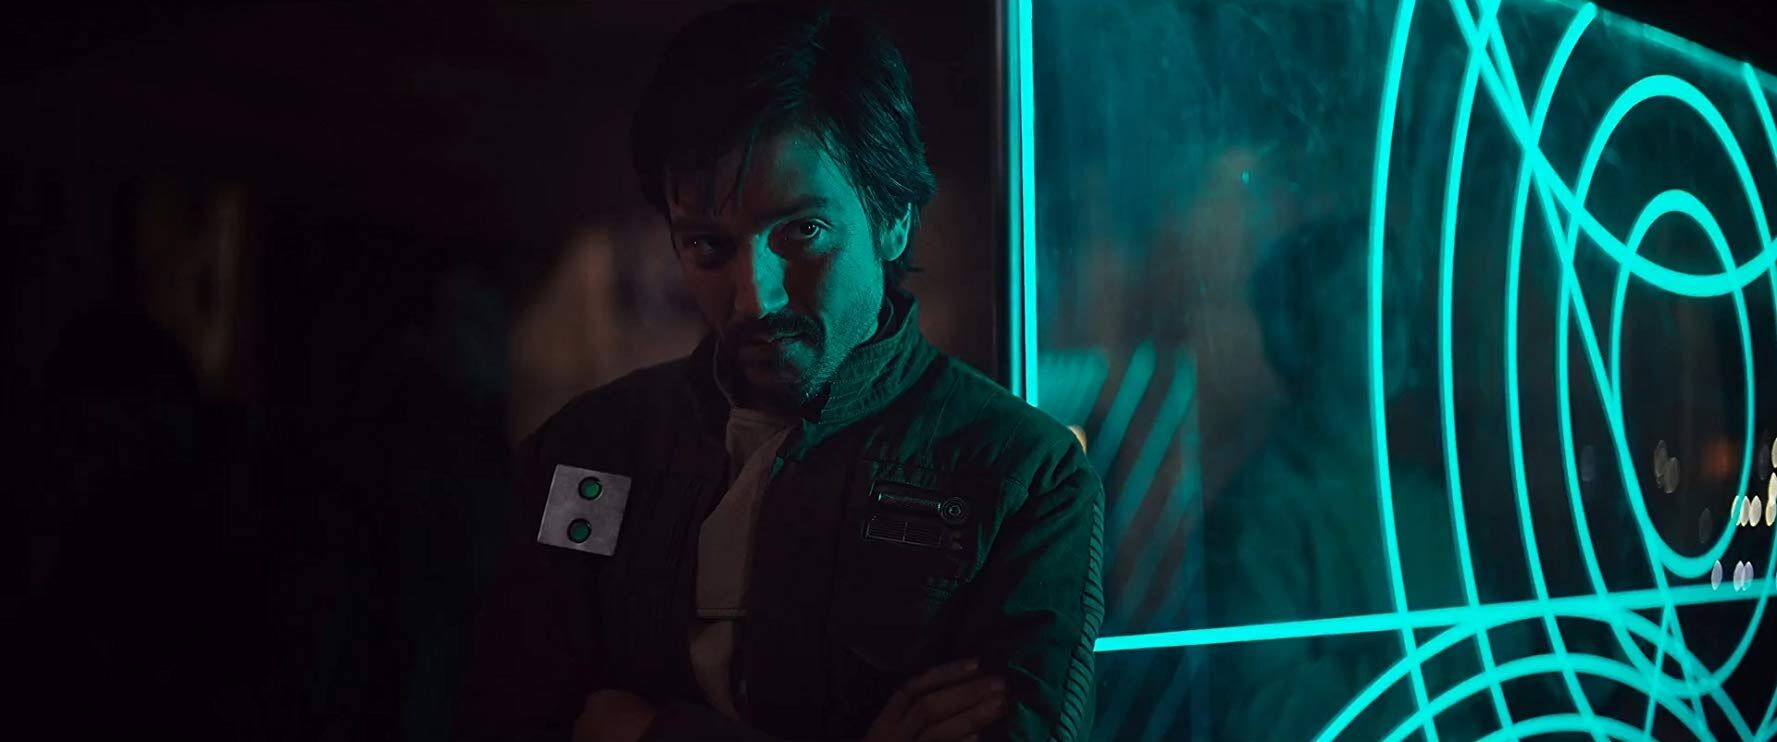 Star Wars: Cassian Andor series to start filming this year